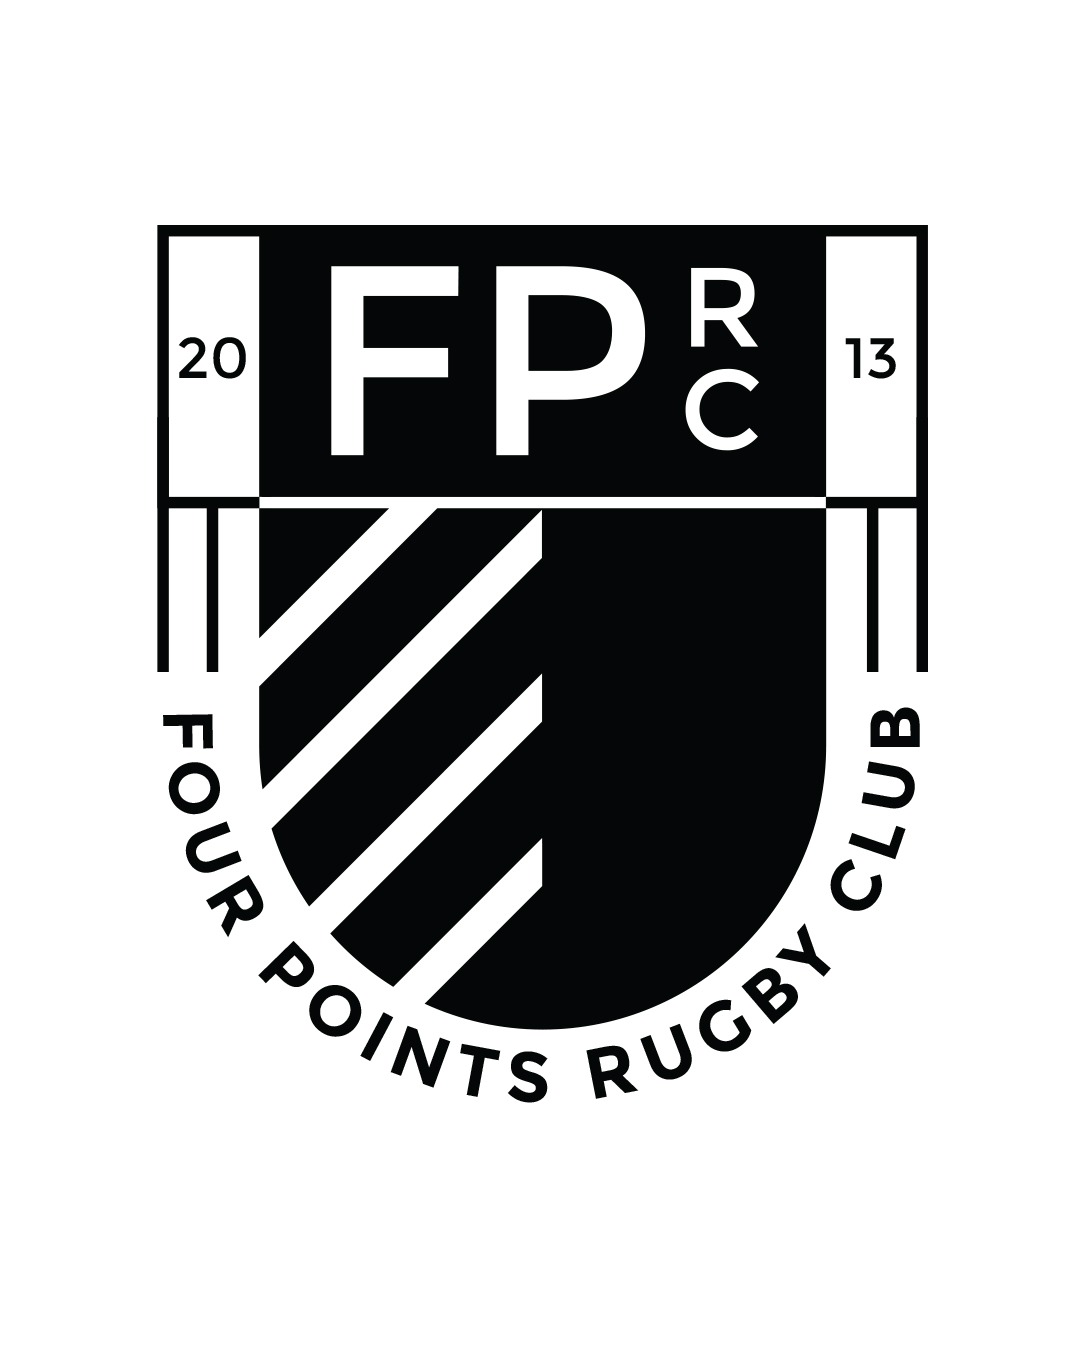 Logo design and Brand Development for Four Points Rugby - Mindset Creative Agency